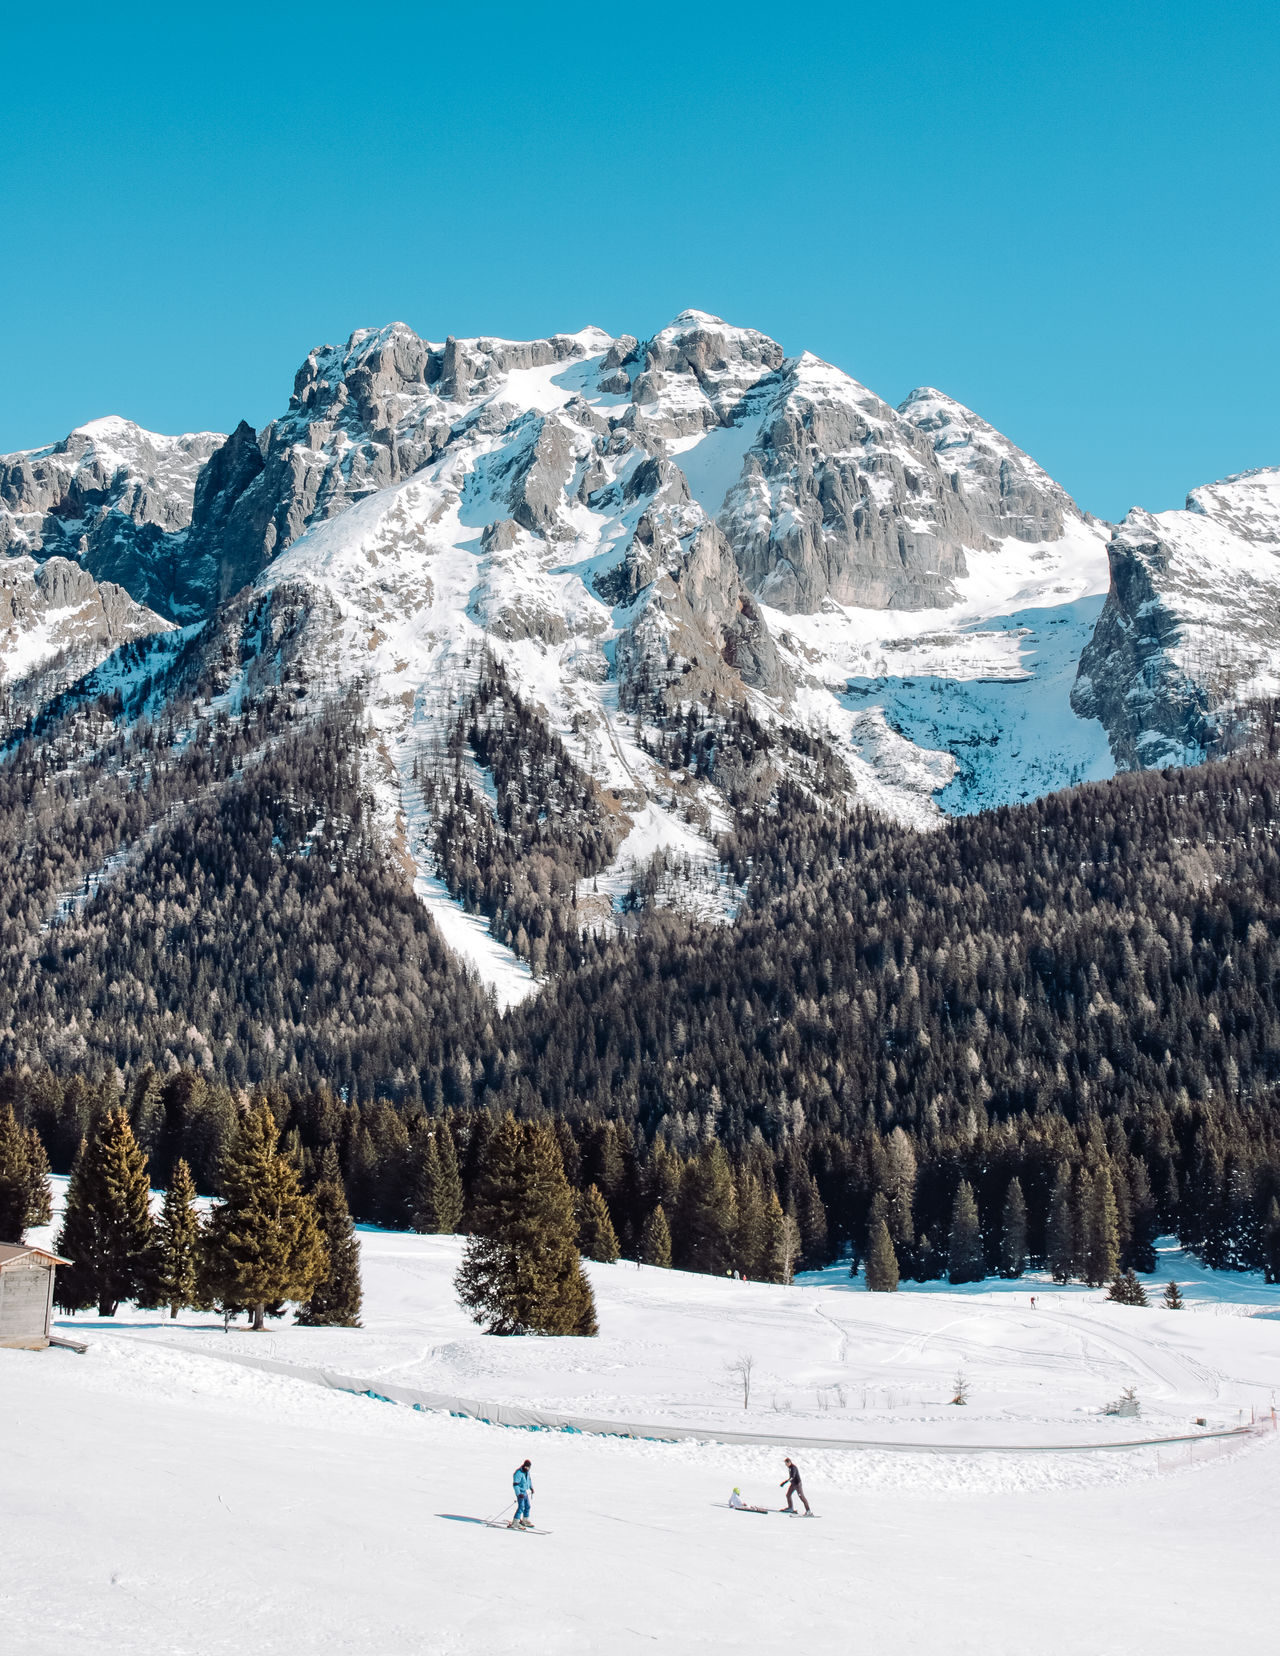 Beauty In Nature Blue Bluesky Clear Sky Cold Temperature Dolomites, Italy Frozen Landscape Leisure Activity Mountain Mountain Range Mountain View Nature Non-urban Scene Outdoors Scenics Ski Holiday Skiing Snow Snow Mountain Snow Walk Snowcapped Mountain The Great Outdoors - 2017 EyeEm Awards Tranquility Winter